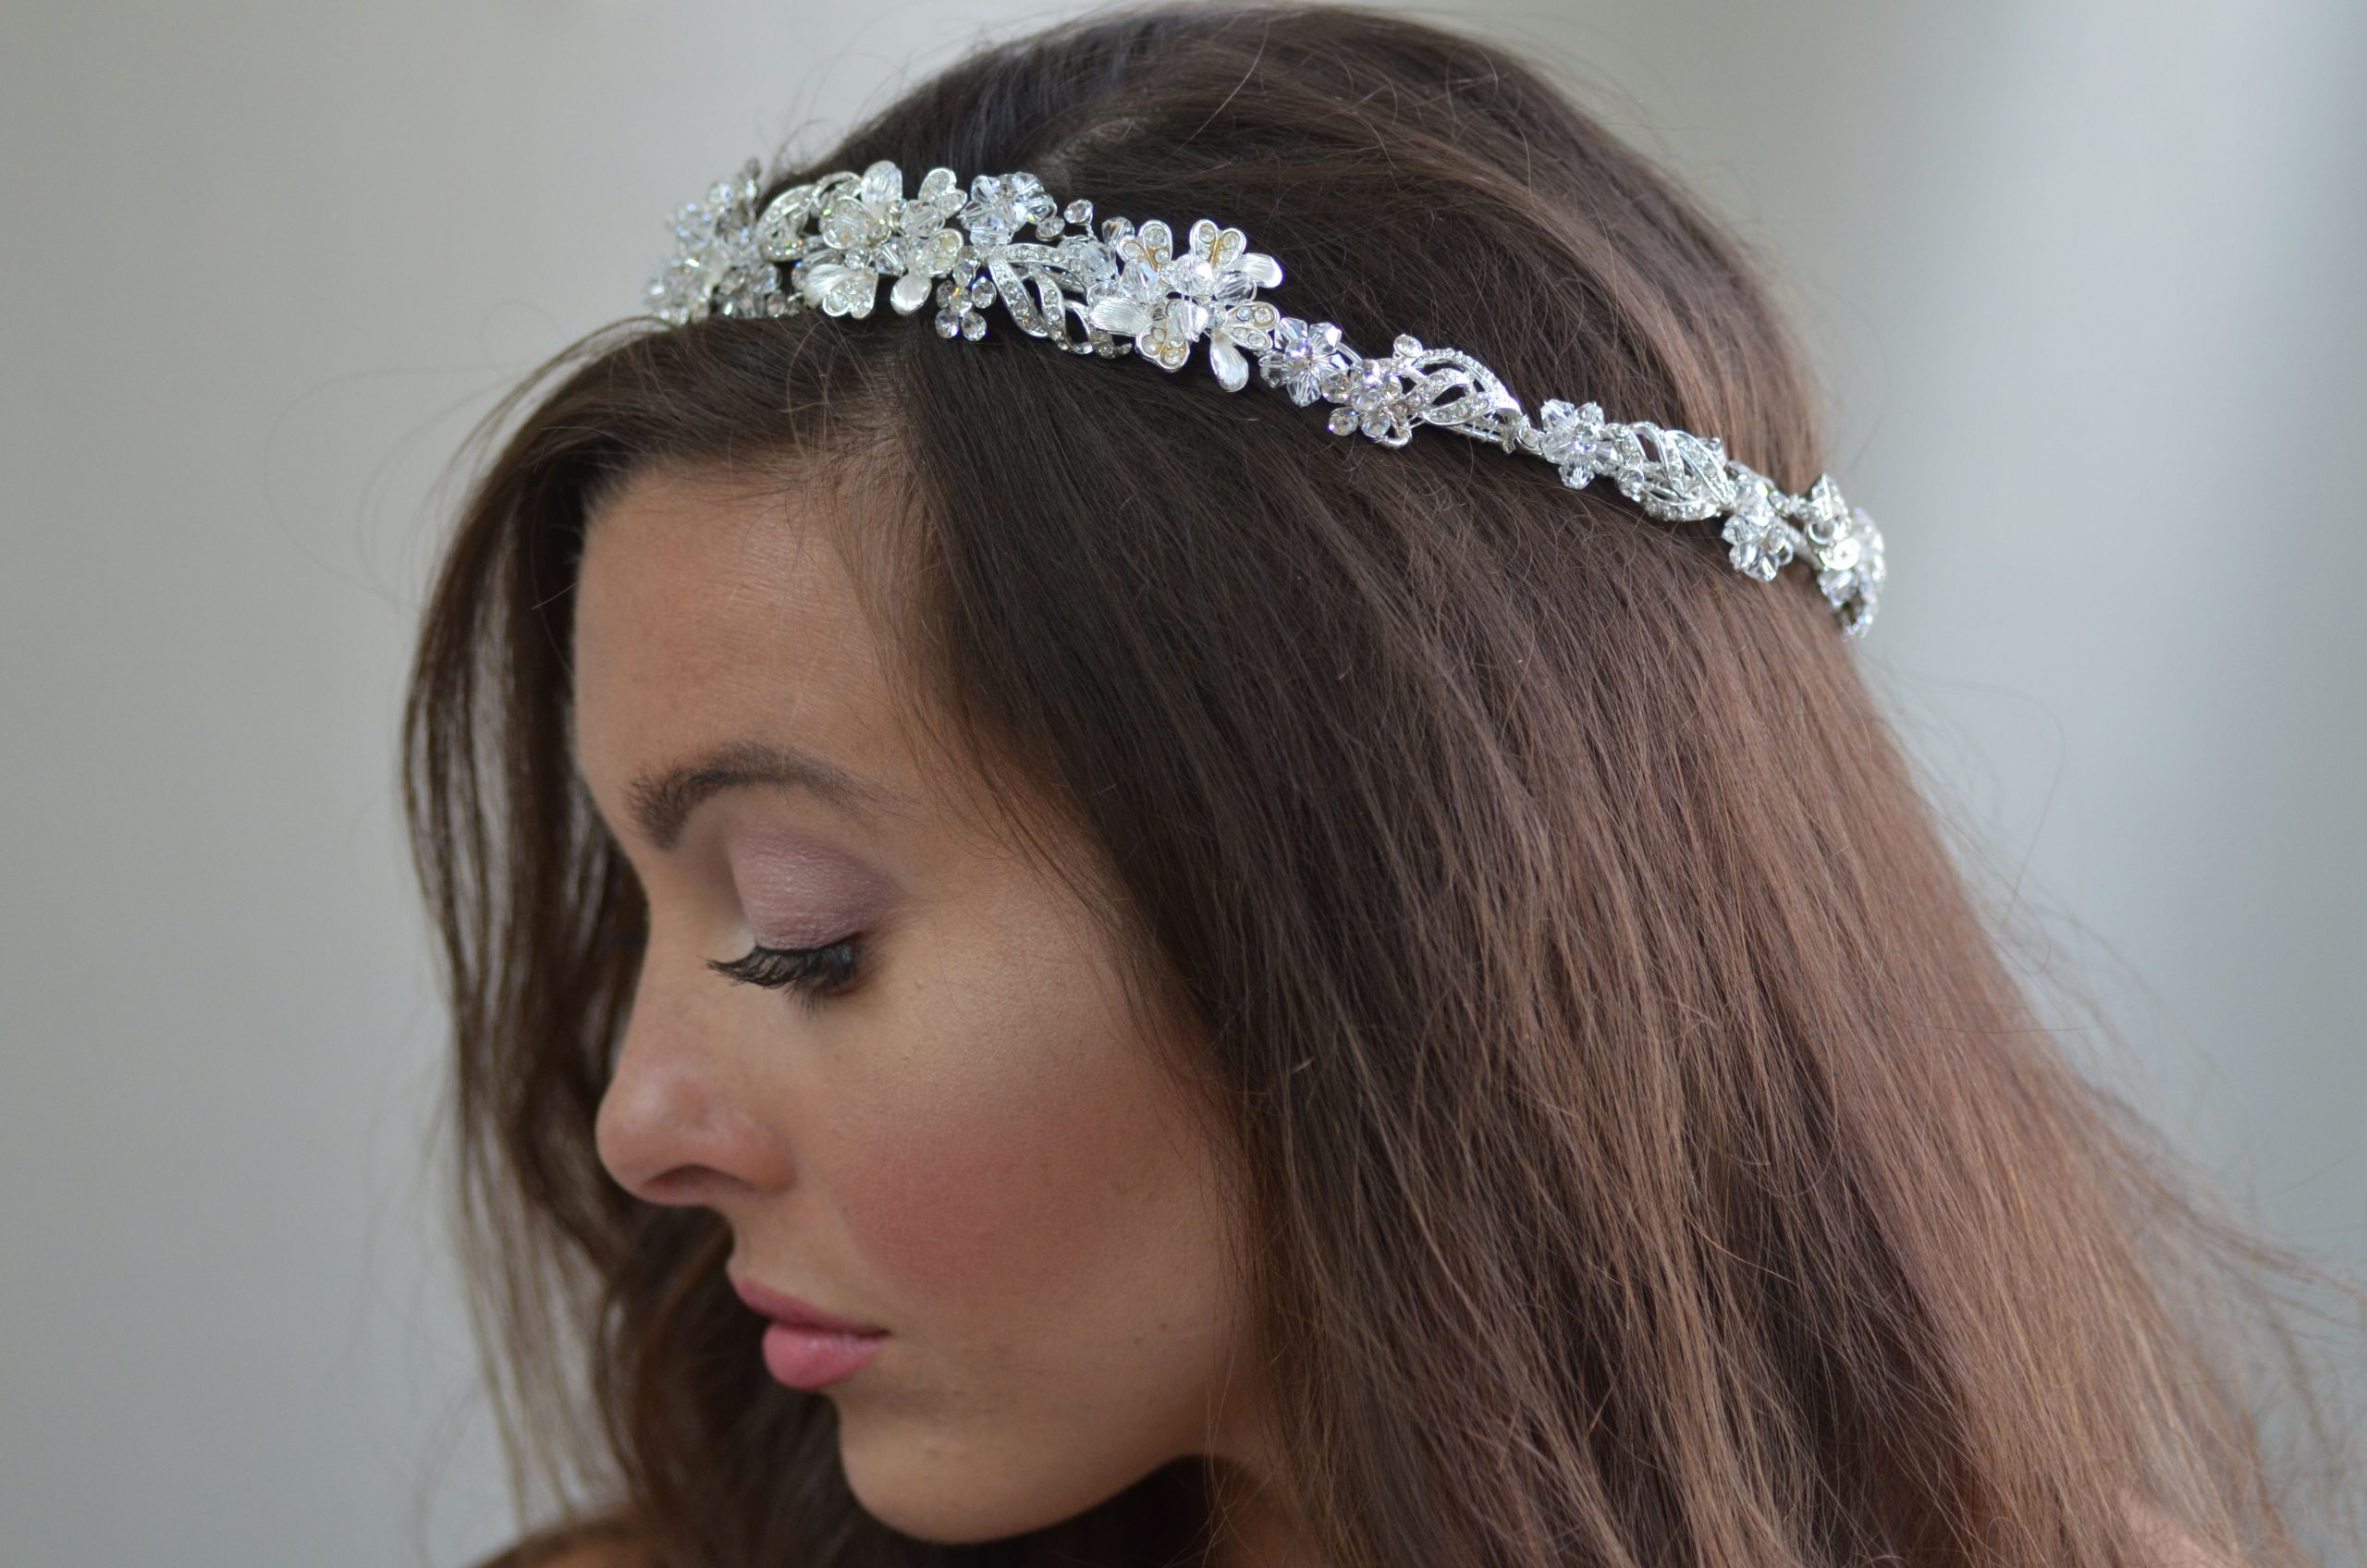 Elena E860 headpiece.